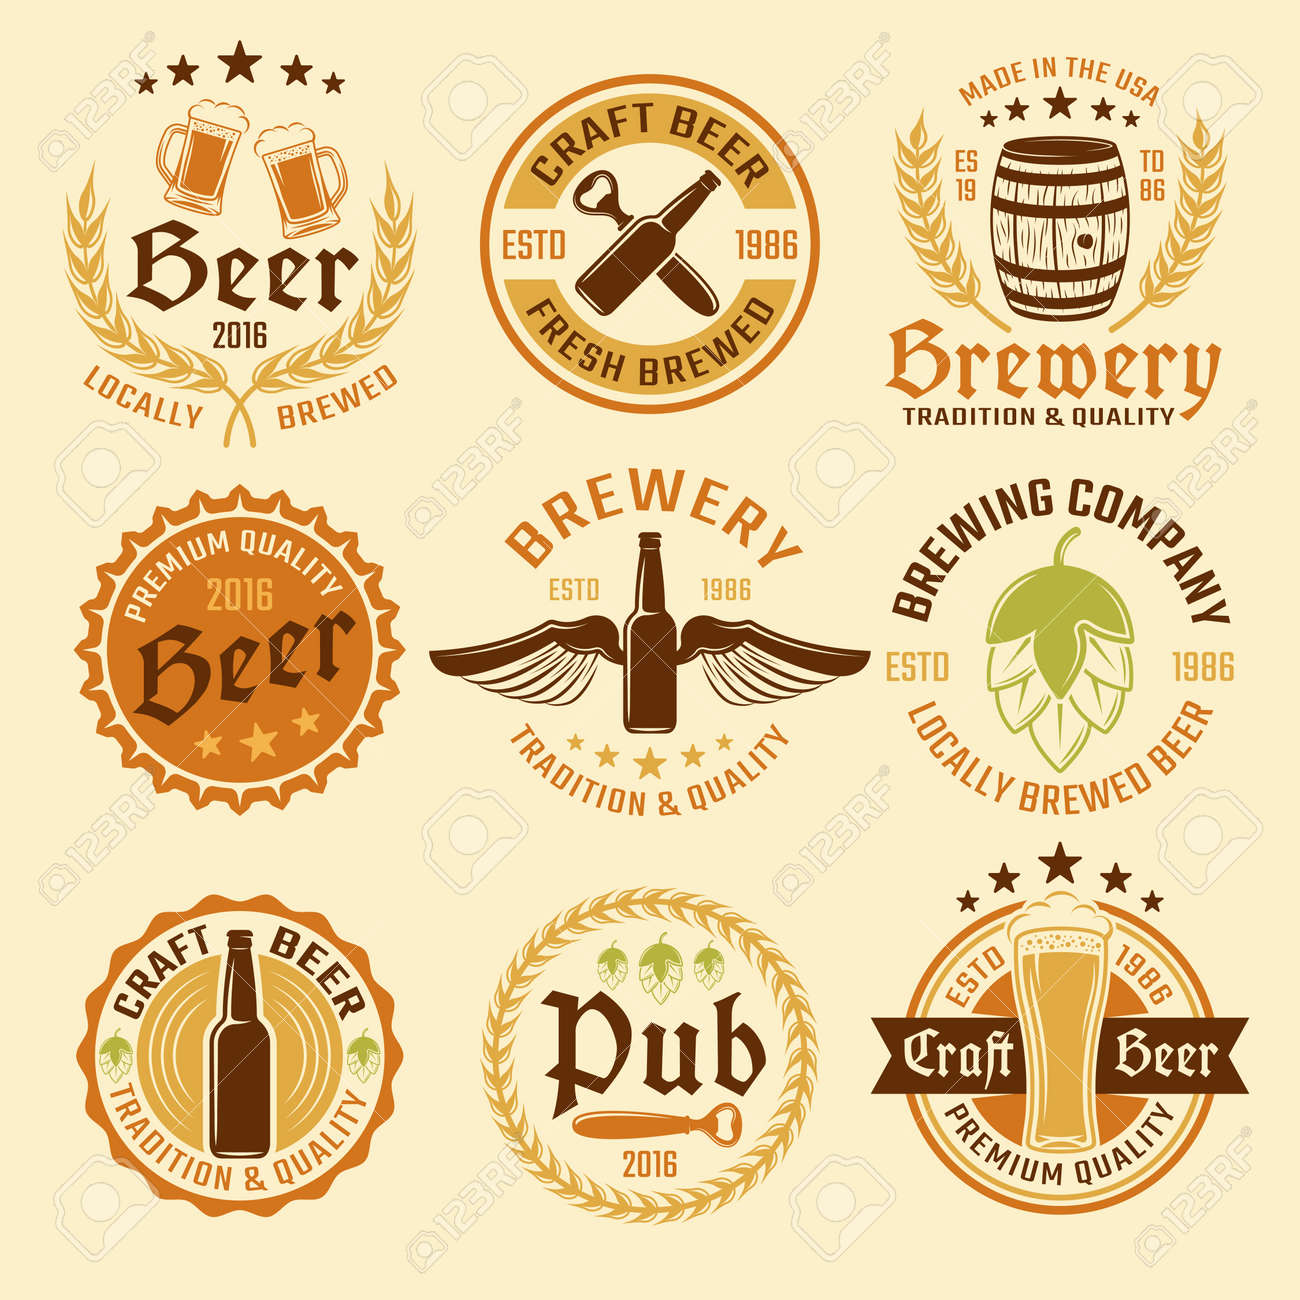 Colored beer emblem set with types of beer and production with premium quality vector illustration - 166687713